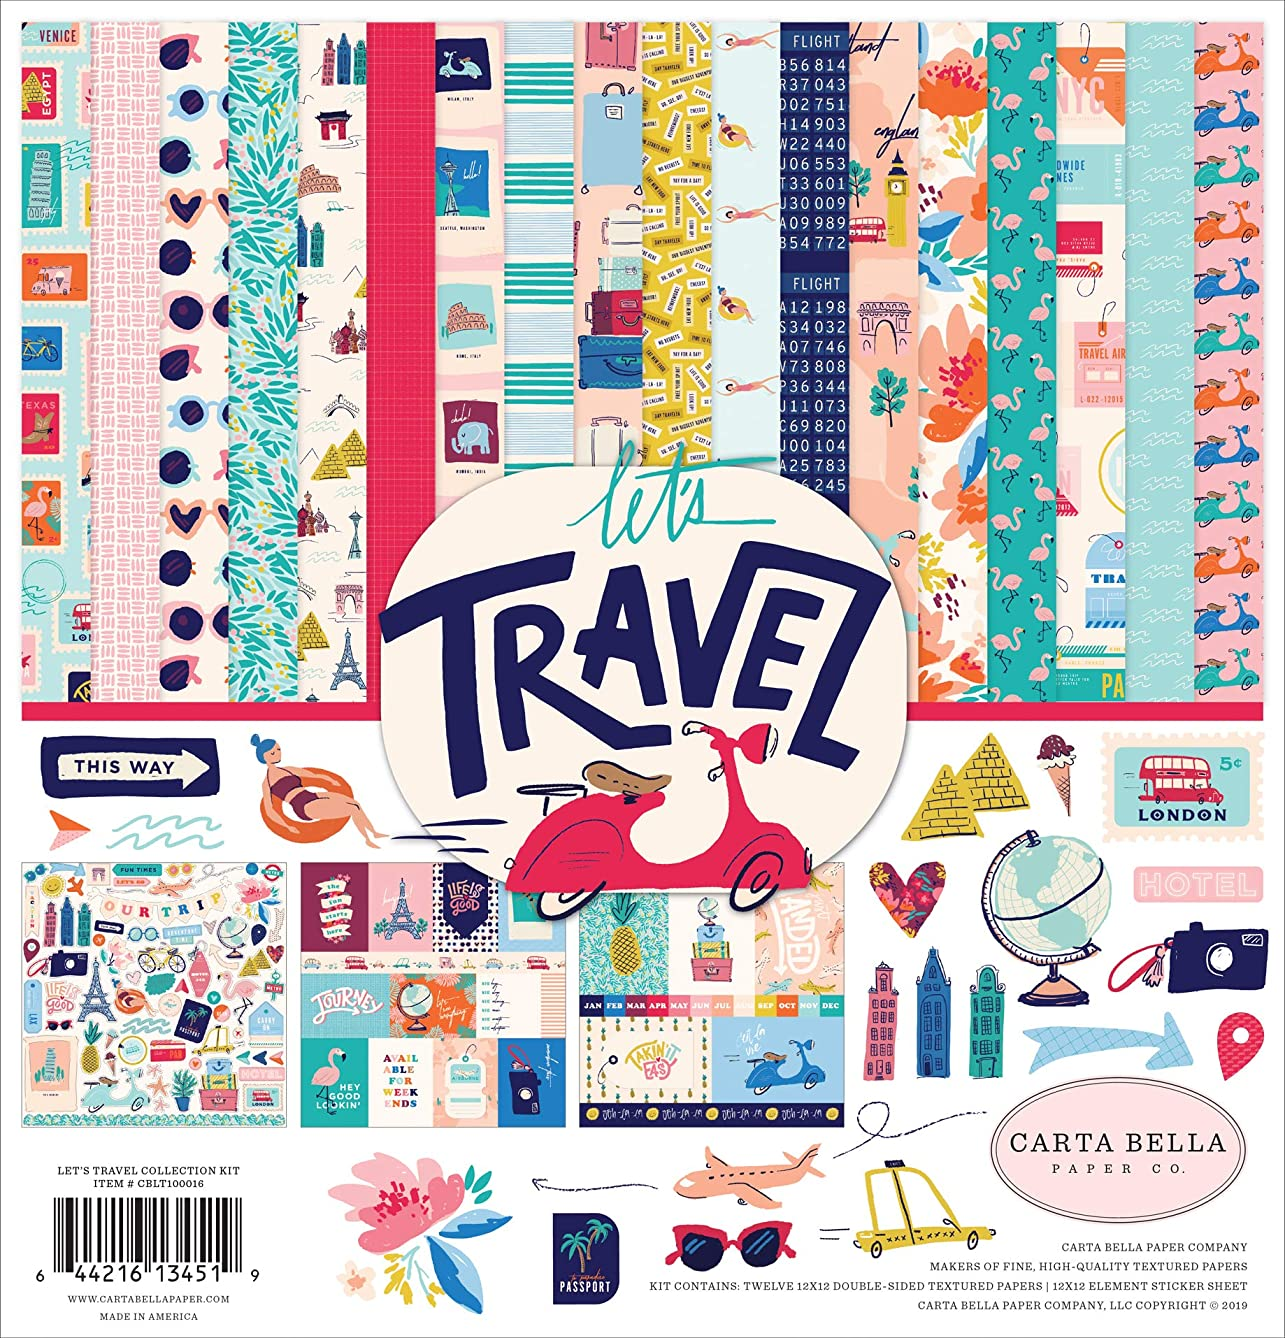 Carta Bella Paper Company CBLT100016 Let's Travel Collection Kit Paper, Pink, Purple, Orange, Blue, Green, Black